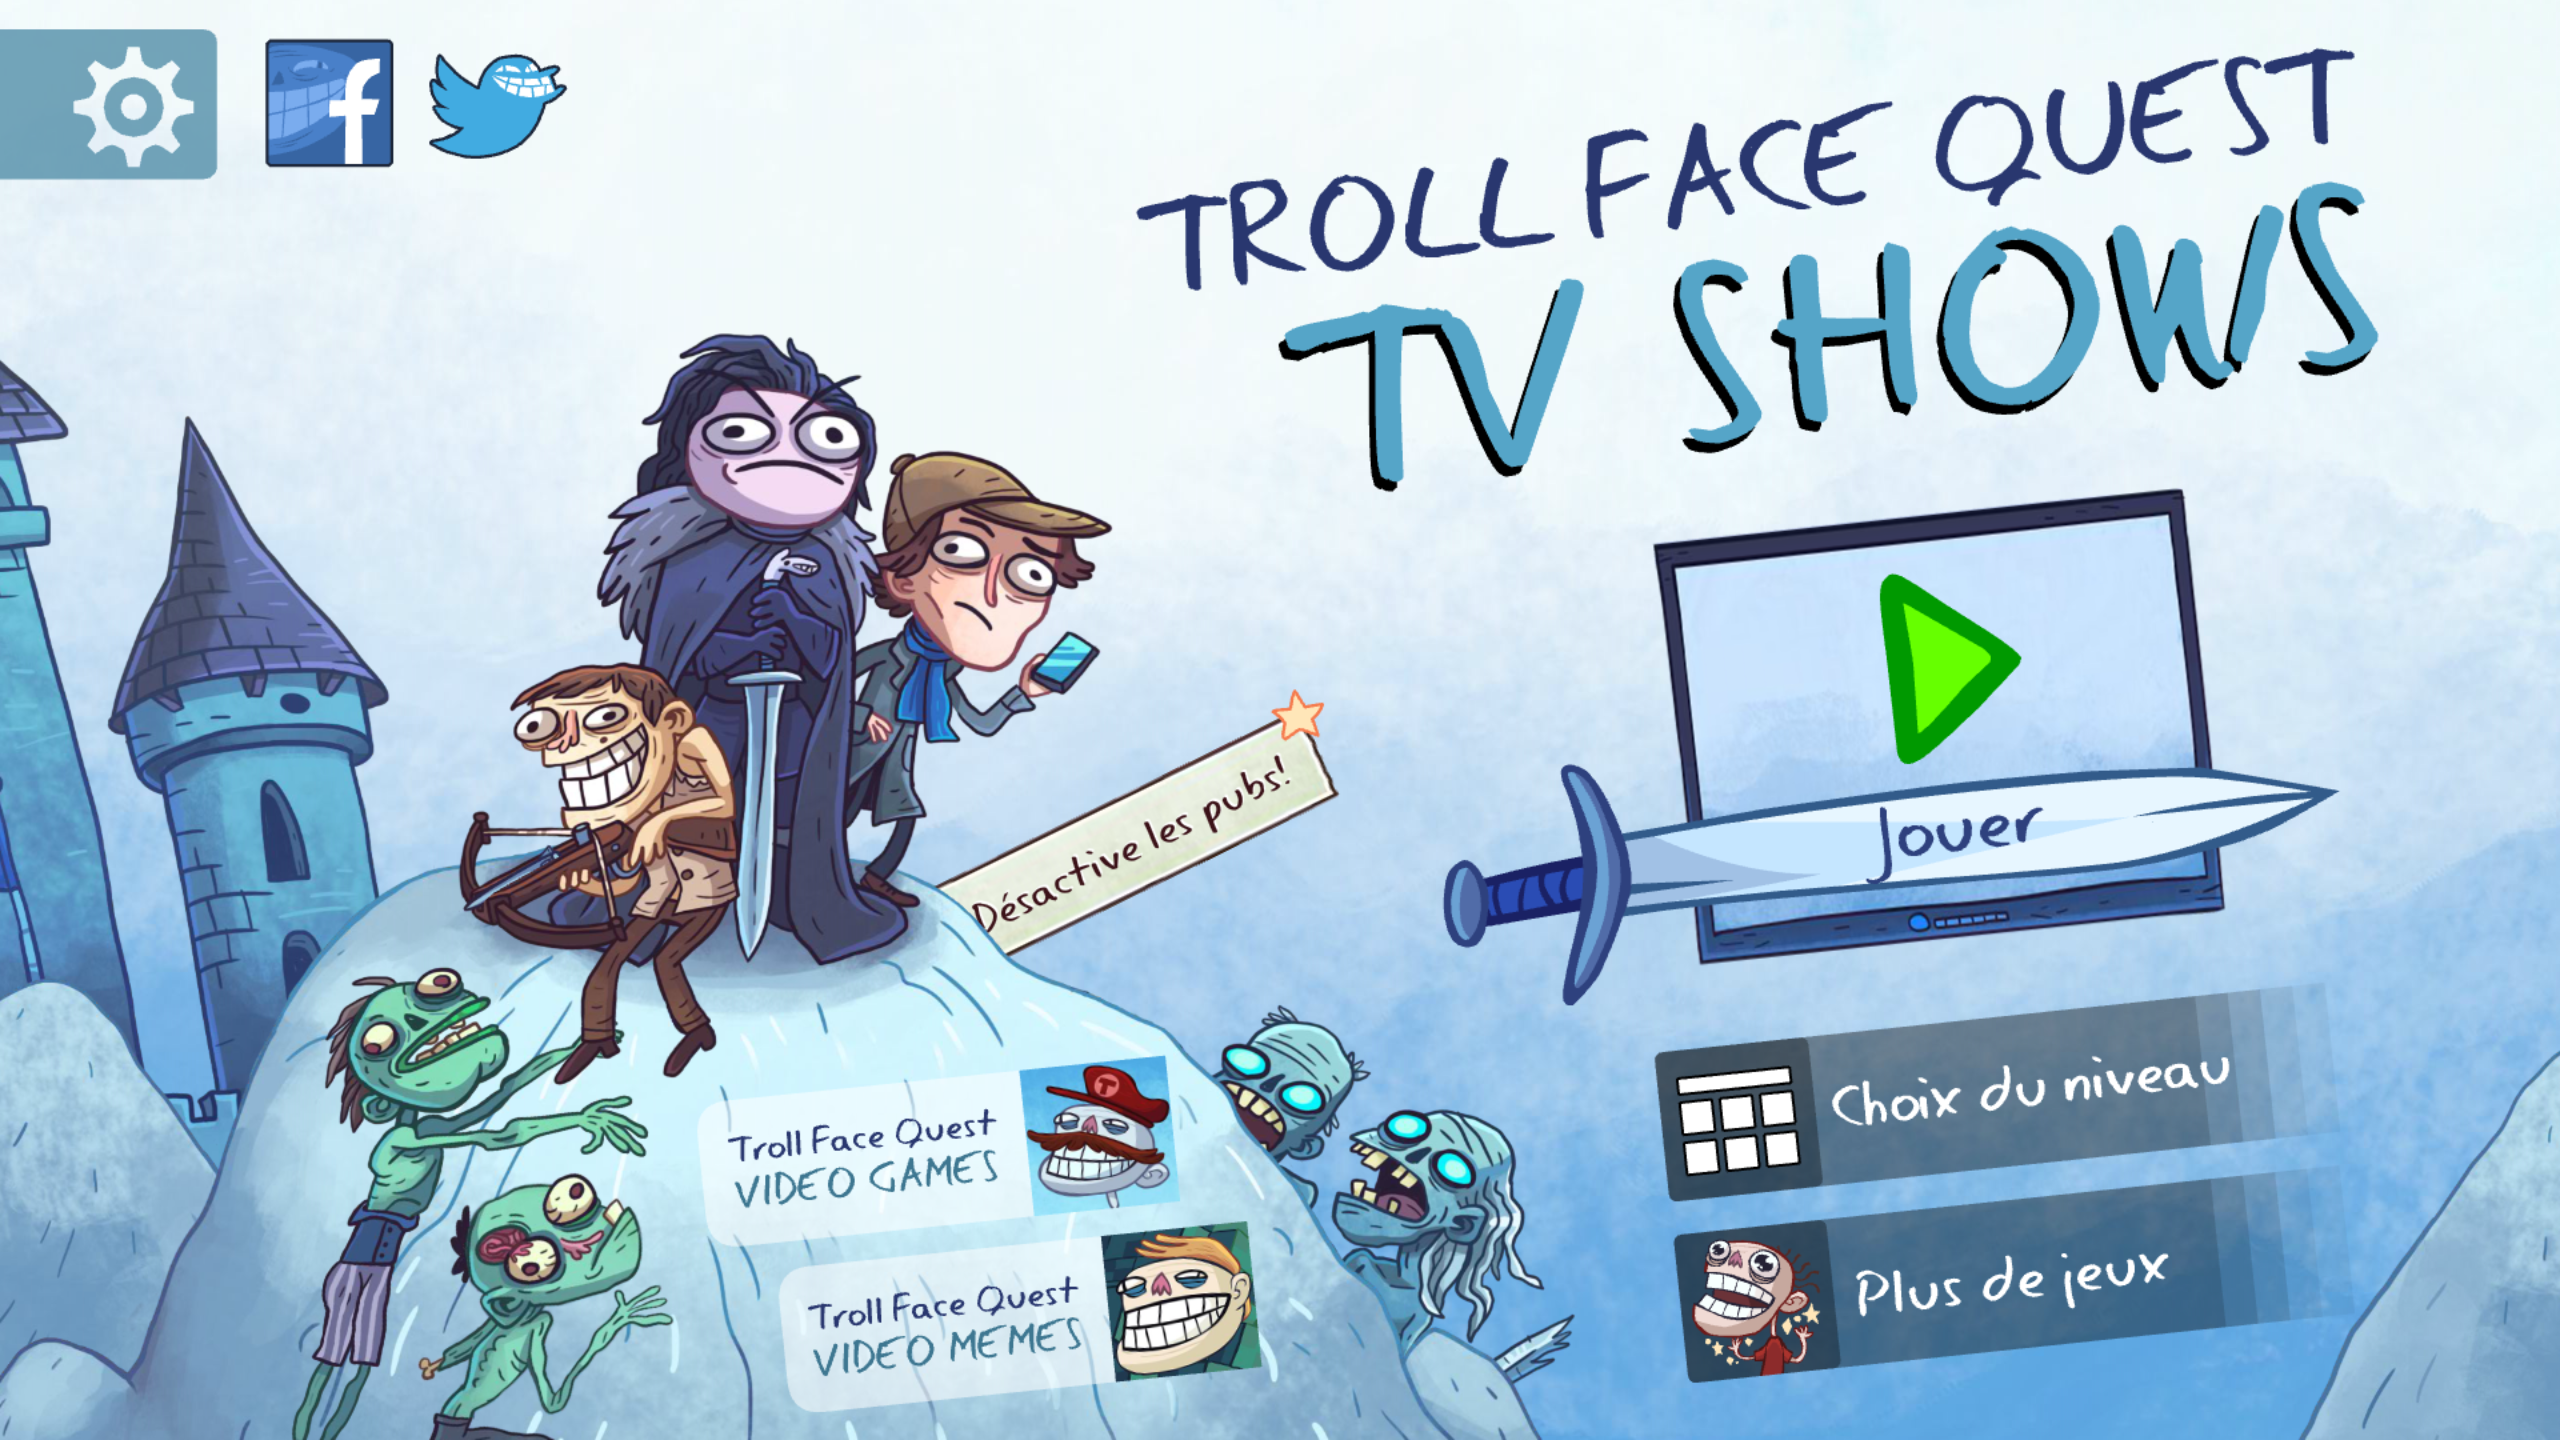 troll-face-quest-tv-shows-1